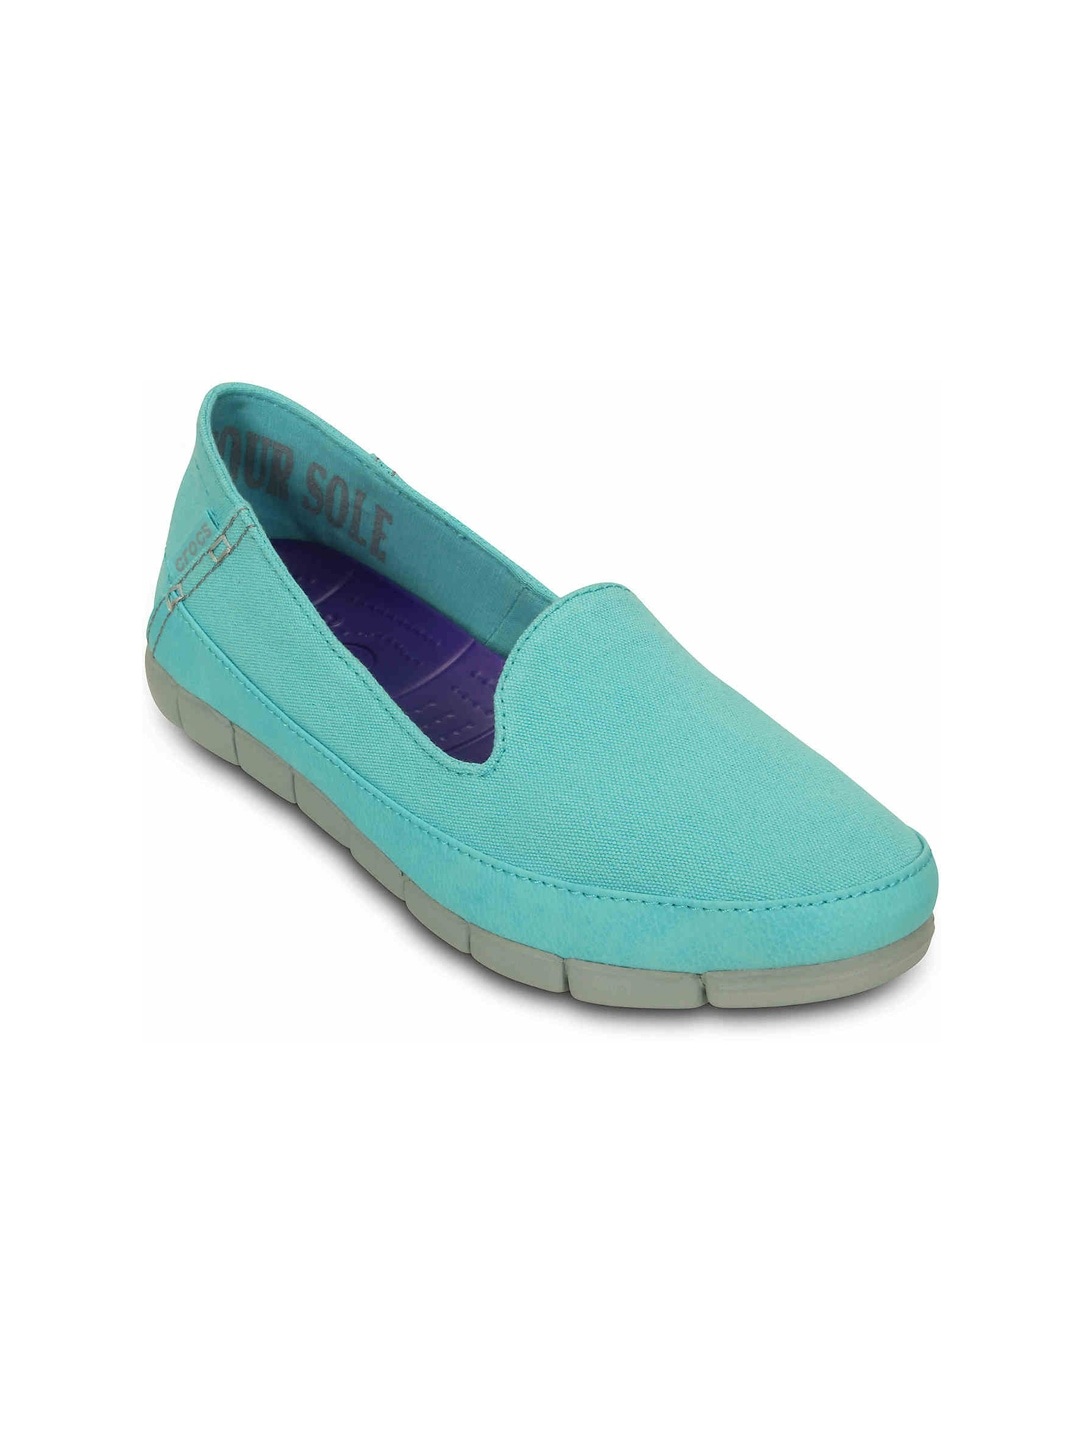 Crocs Women Turquoise Blue Casual Shoes